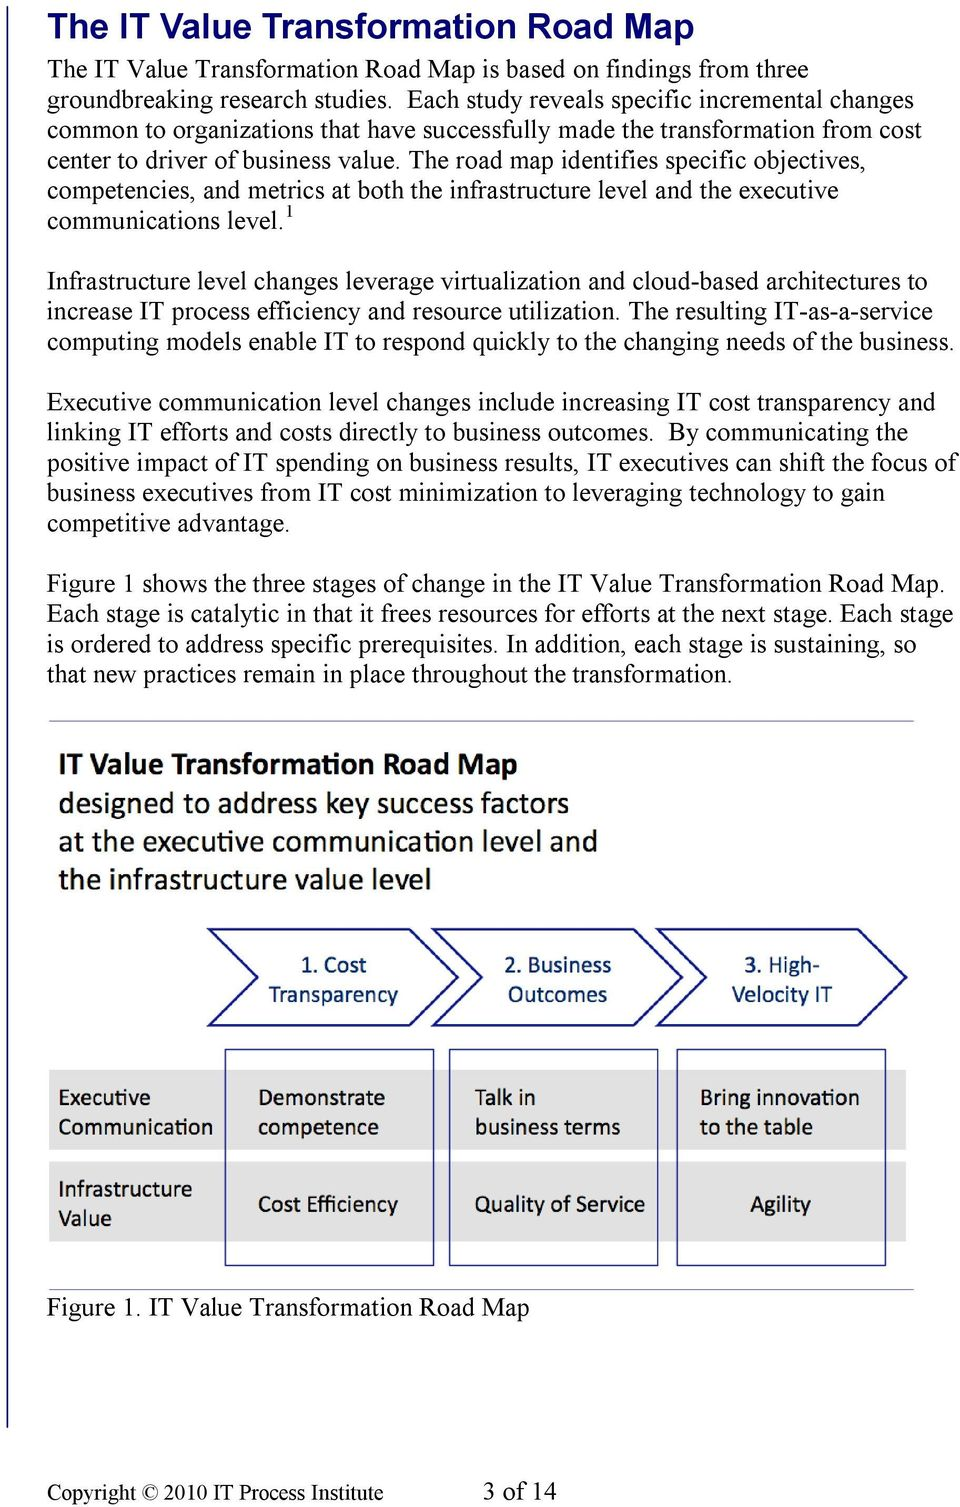 The road map identifies specific objectives, competencies, and metrics at both the infrastructure level and the eecutive communications level.